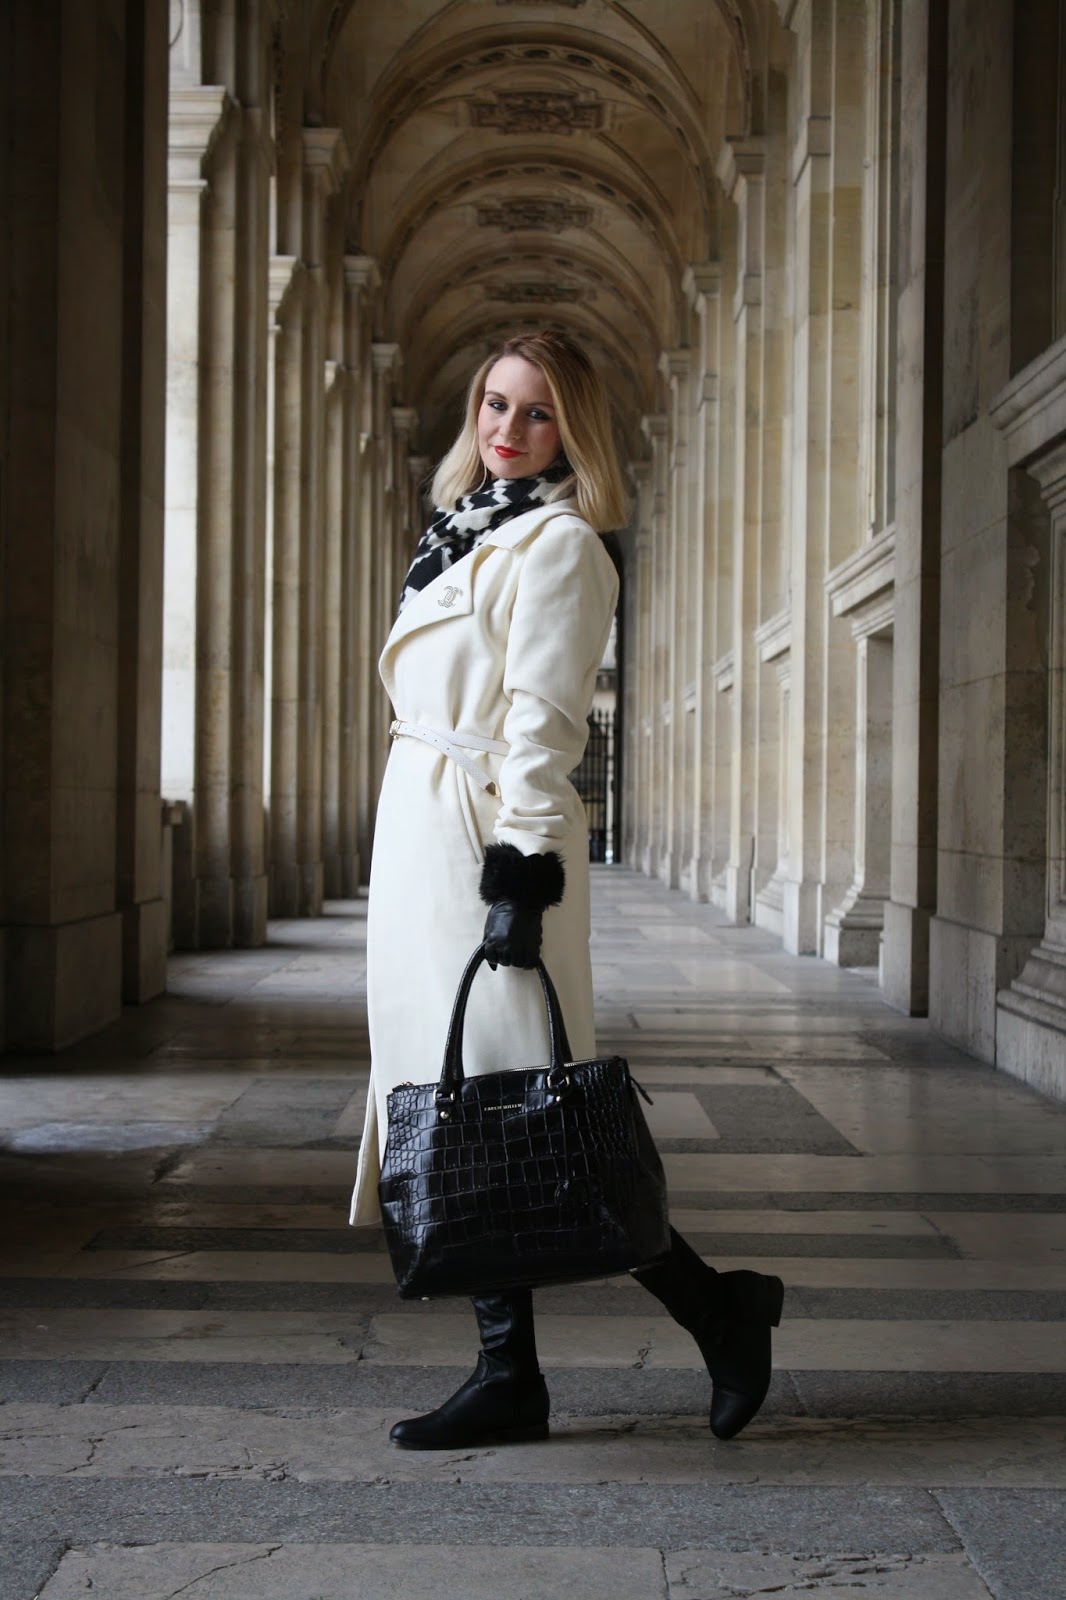 paris, monochrome, fashion blogger, paris 2015, chic, styling, stylist, mode madeleine, fashion blogger, maddie magpie